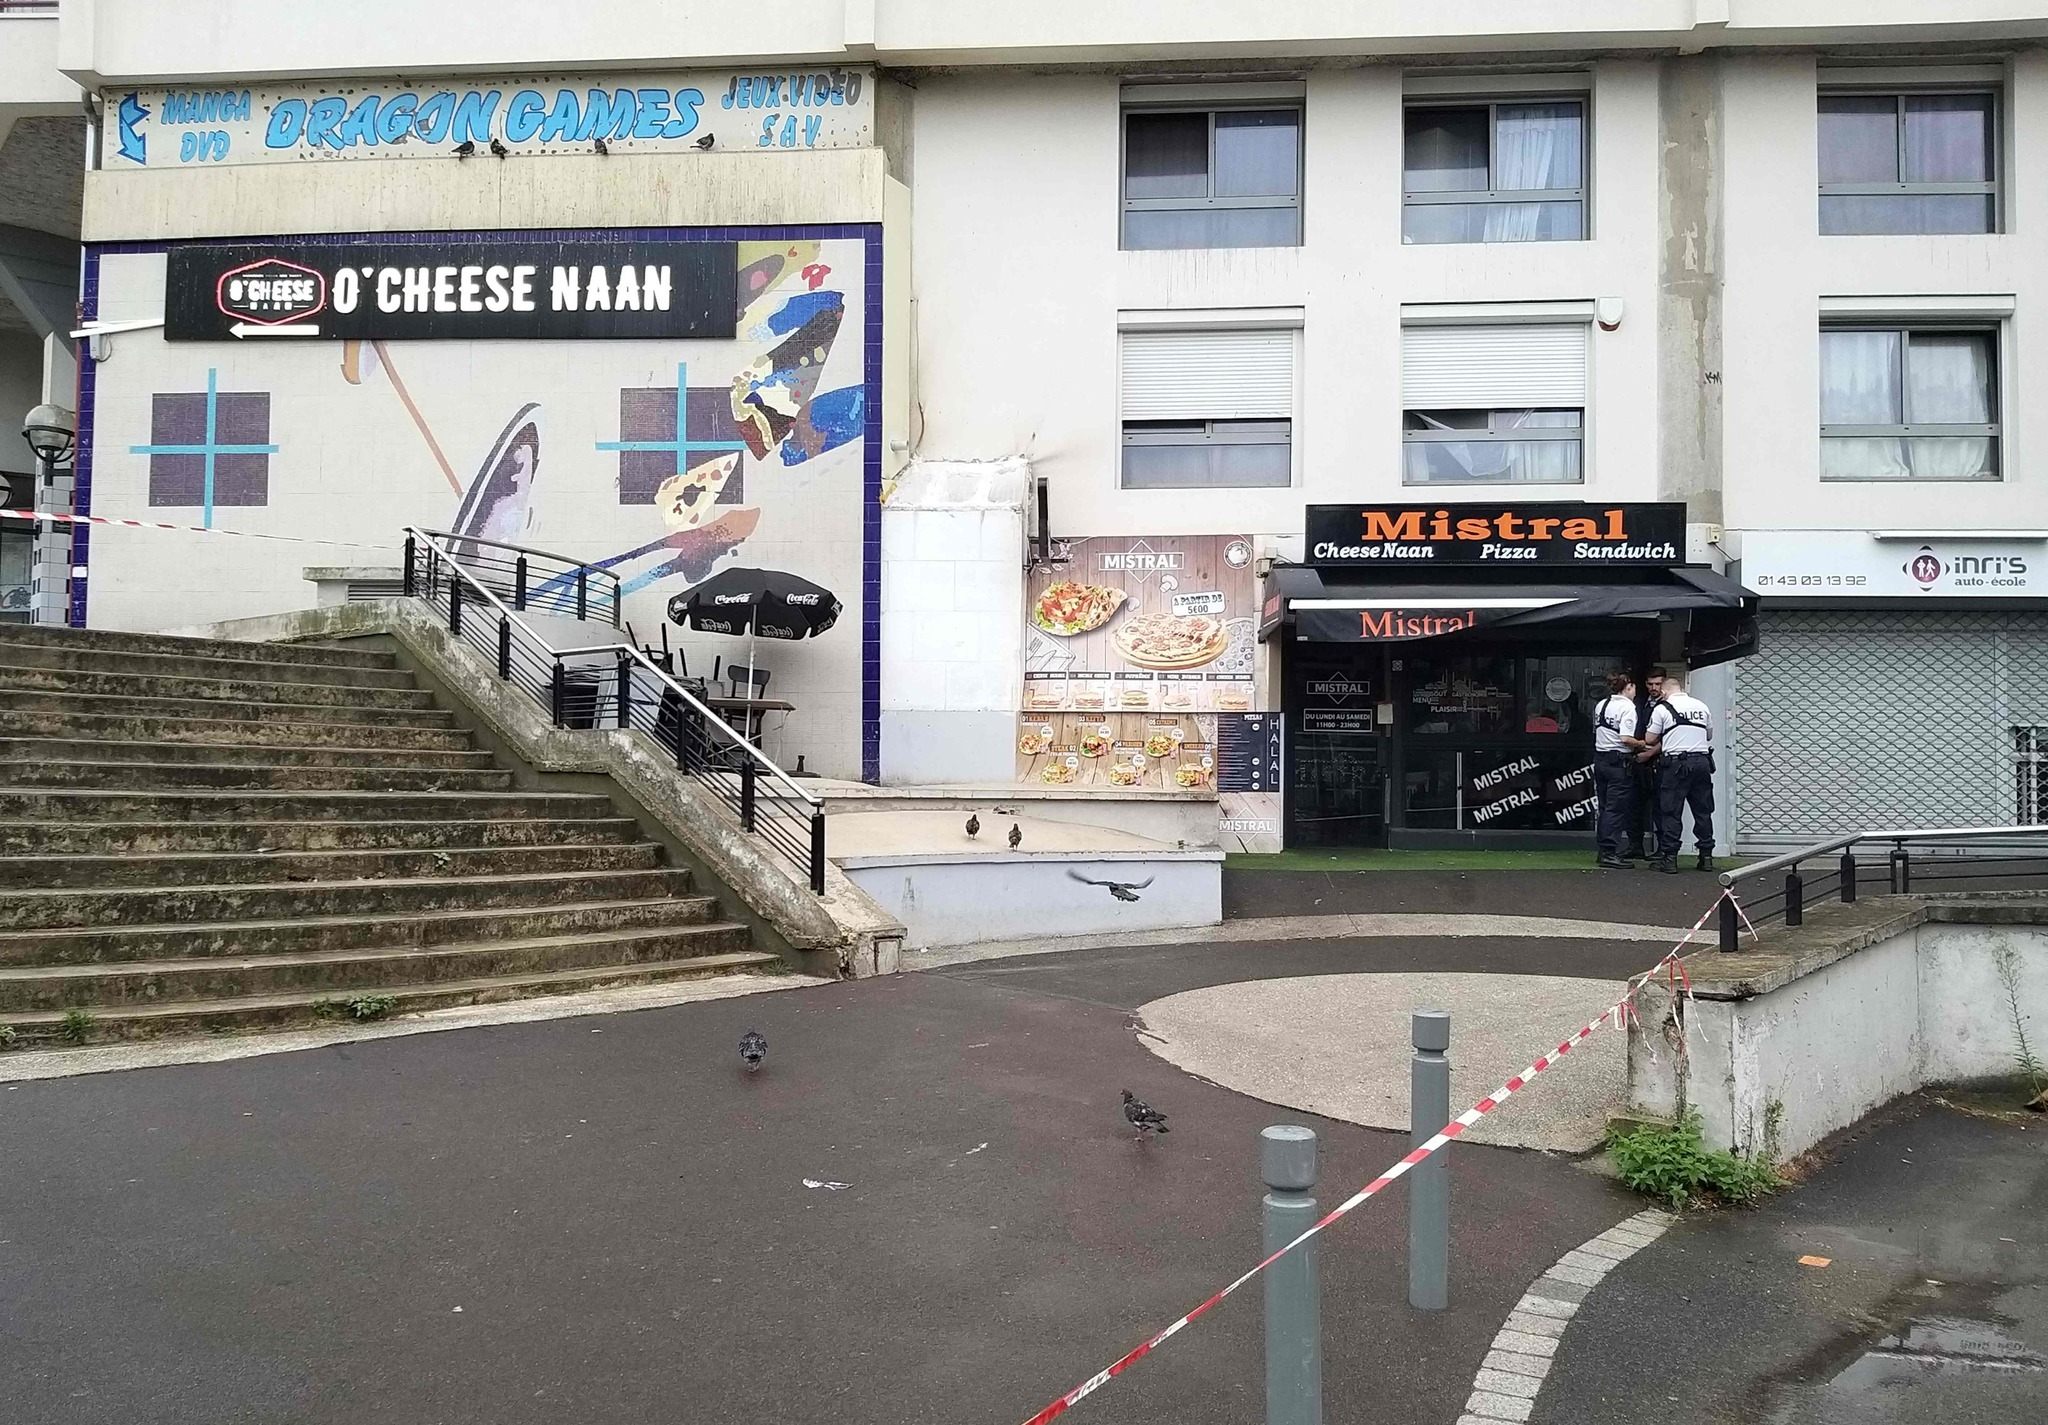 Customer fatally shoots waiter at restaurant in France after waiting too long for sandwich